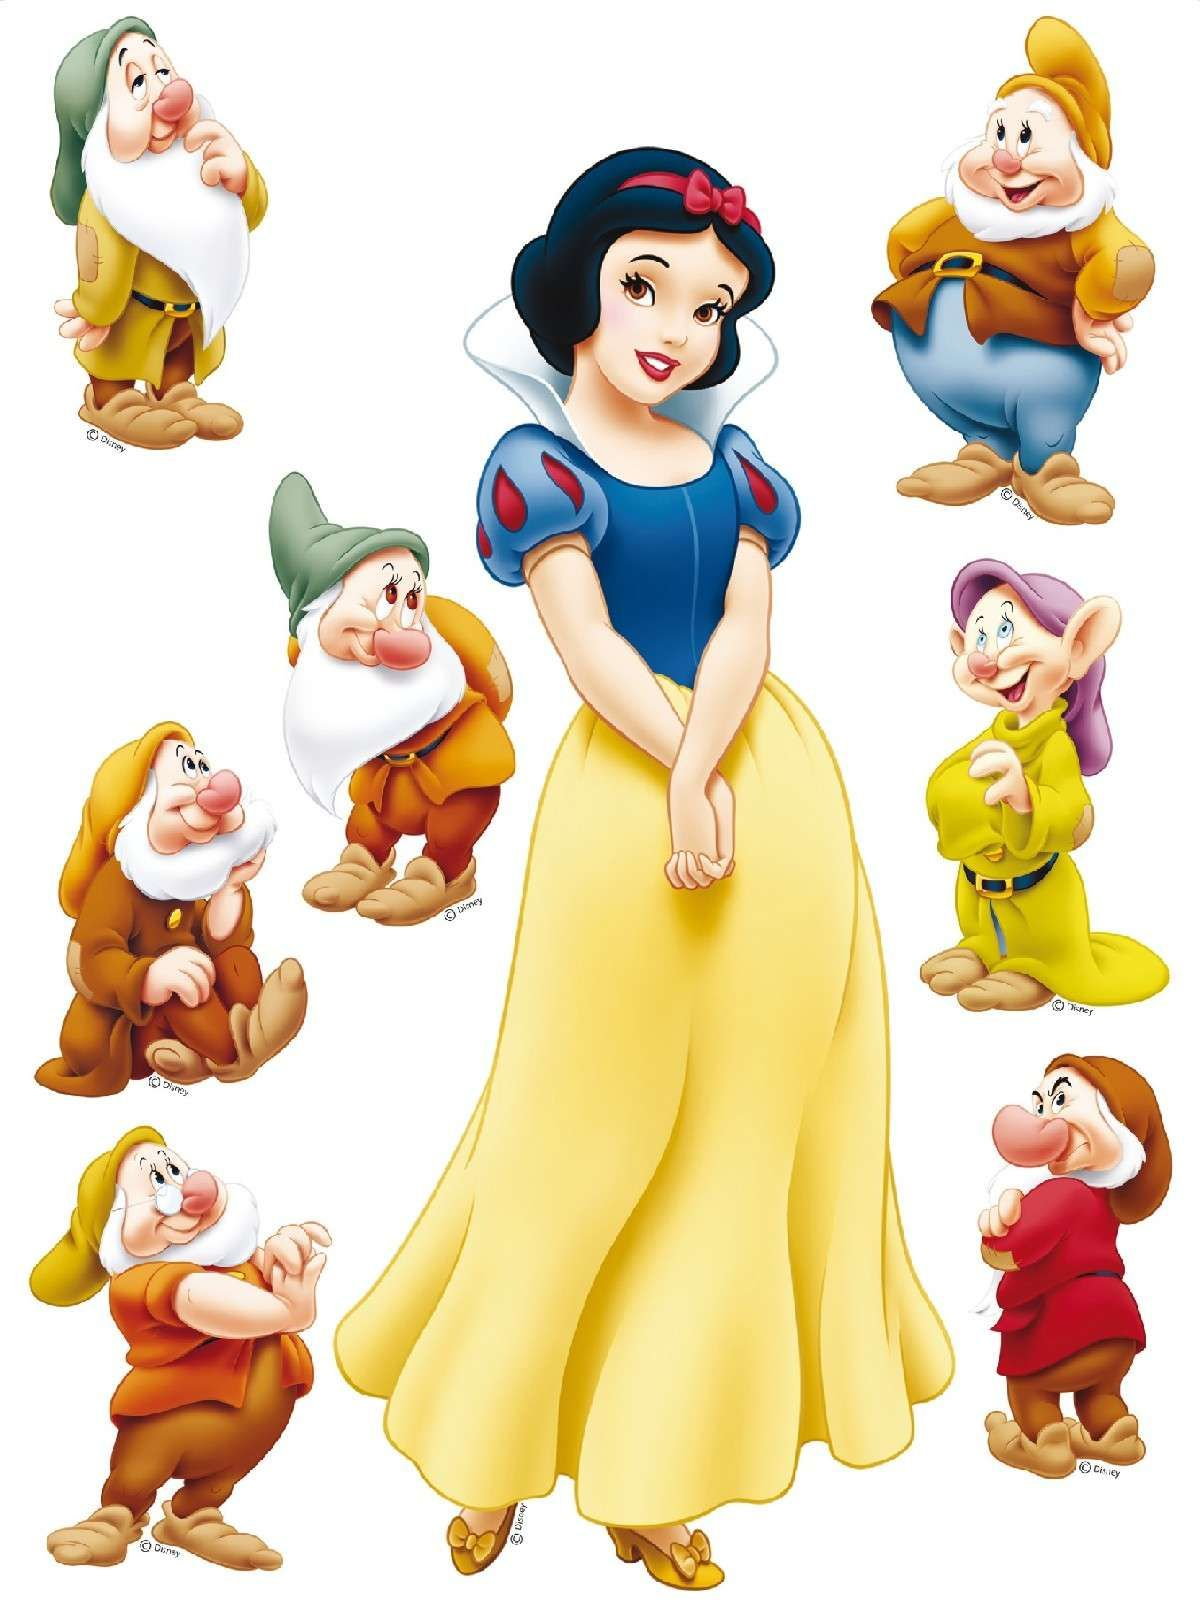 disney princesses disney snow white wallpaper free download | disney